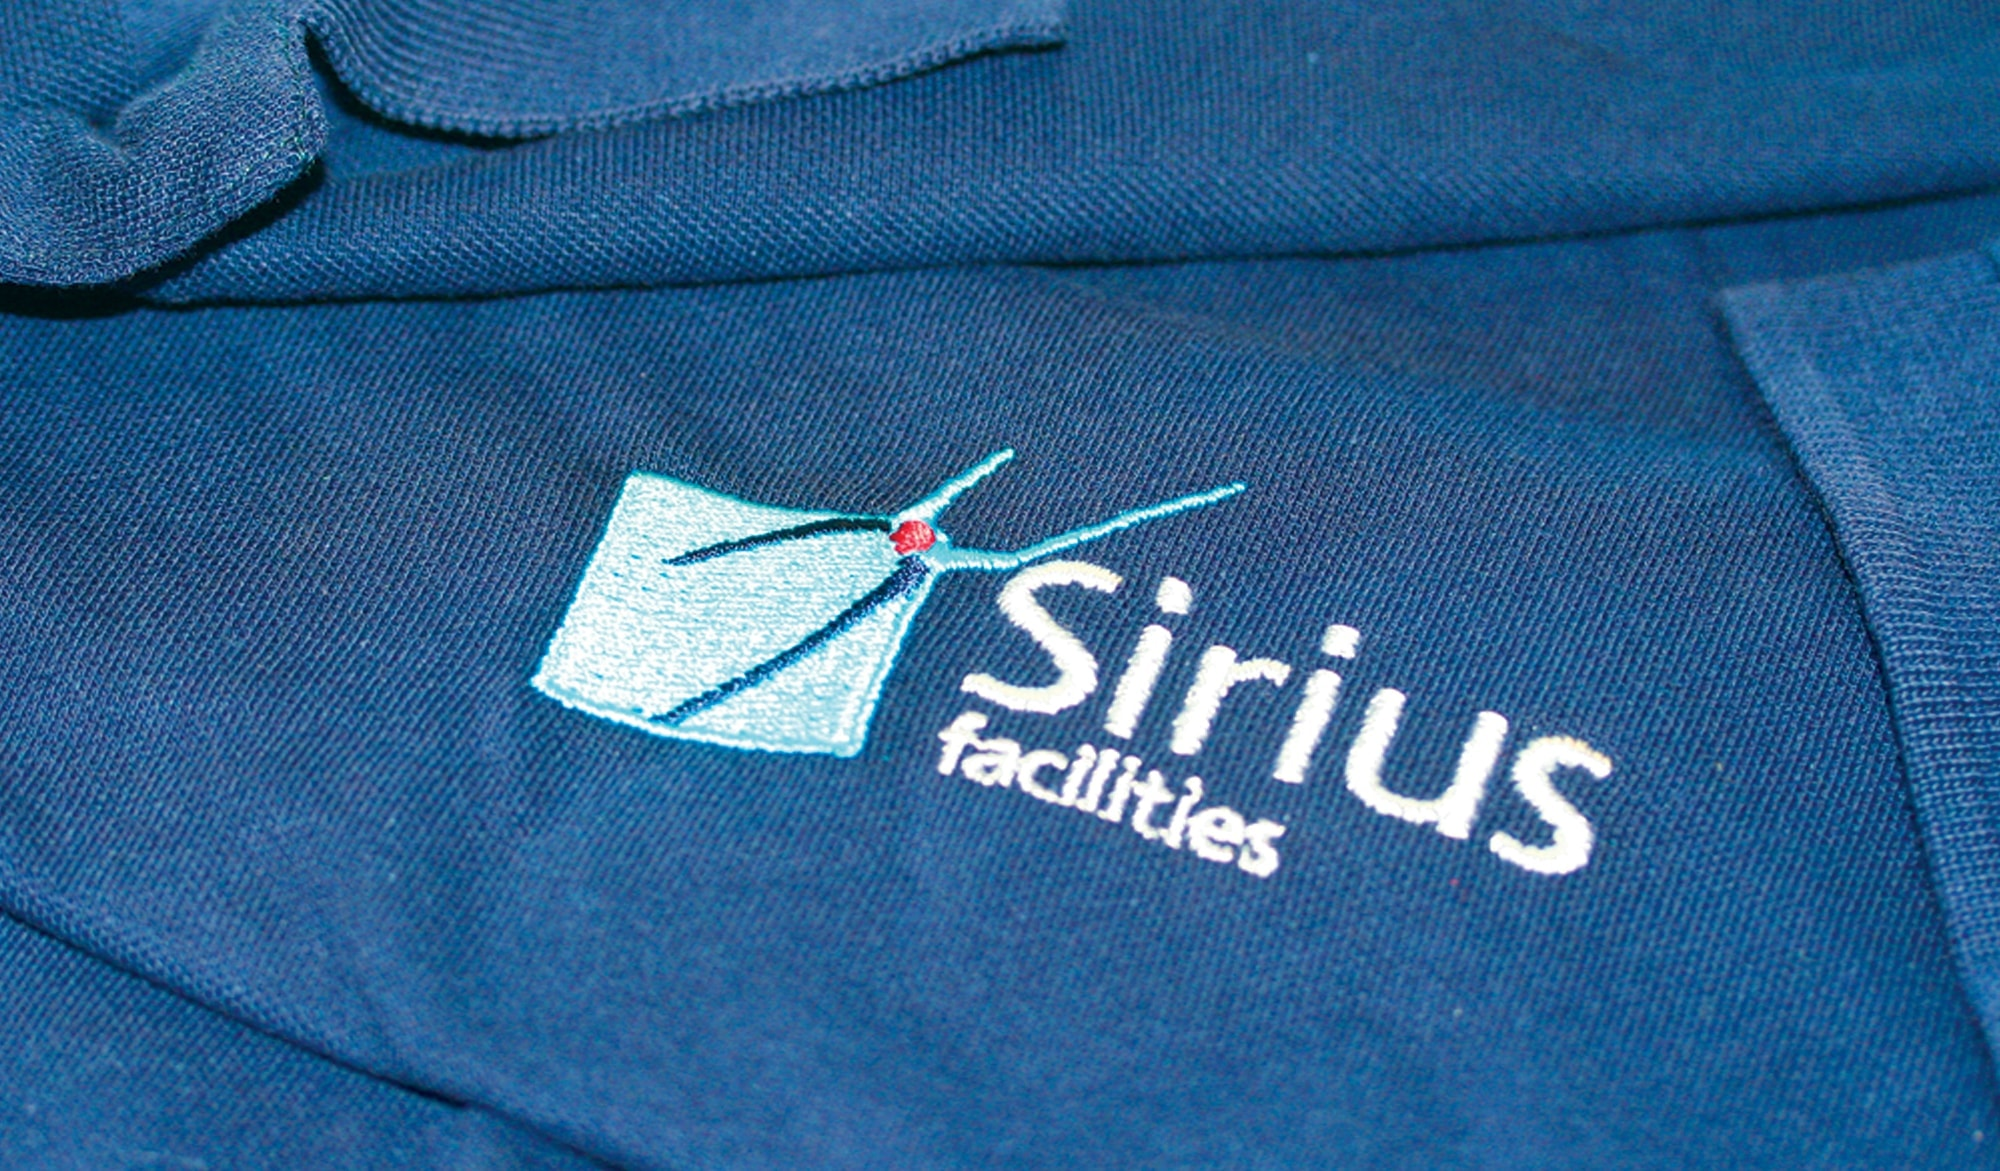 Sirius Facilities promotional t shirt